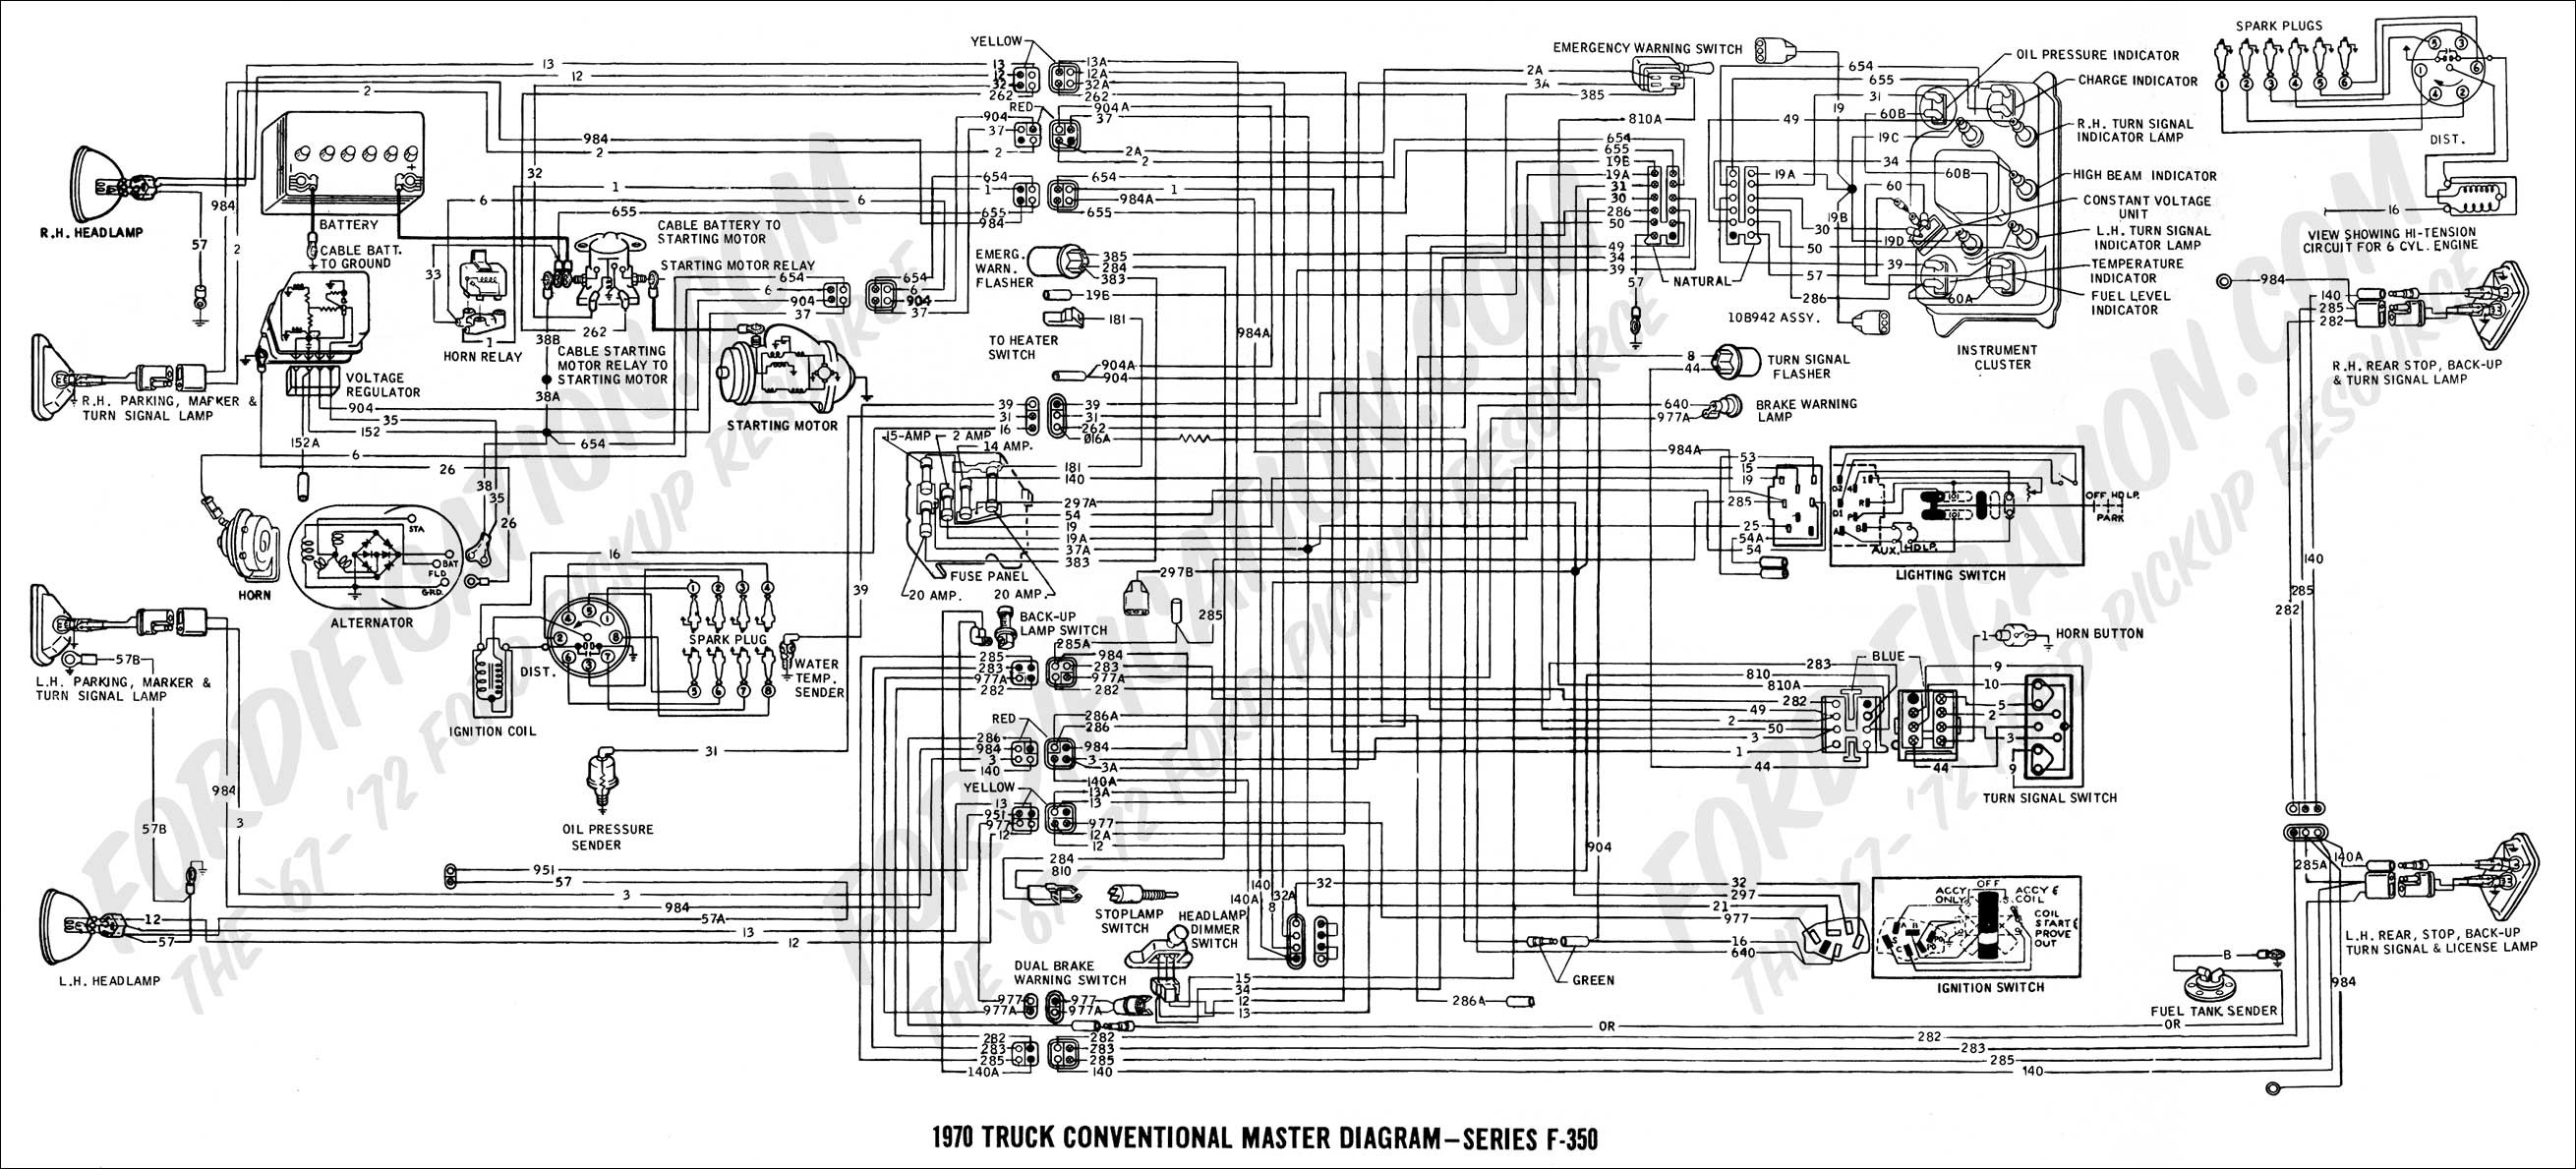 Engine Start button Wiring Diagram Diagram as Well ford F 350 Wiring Diagram In Addition ford Headlight Of Engine Start button Wiring Diagram